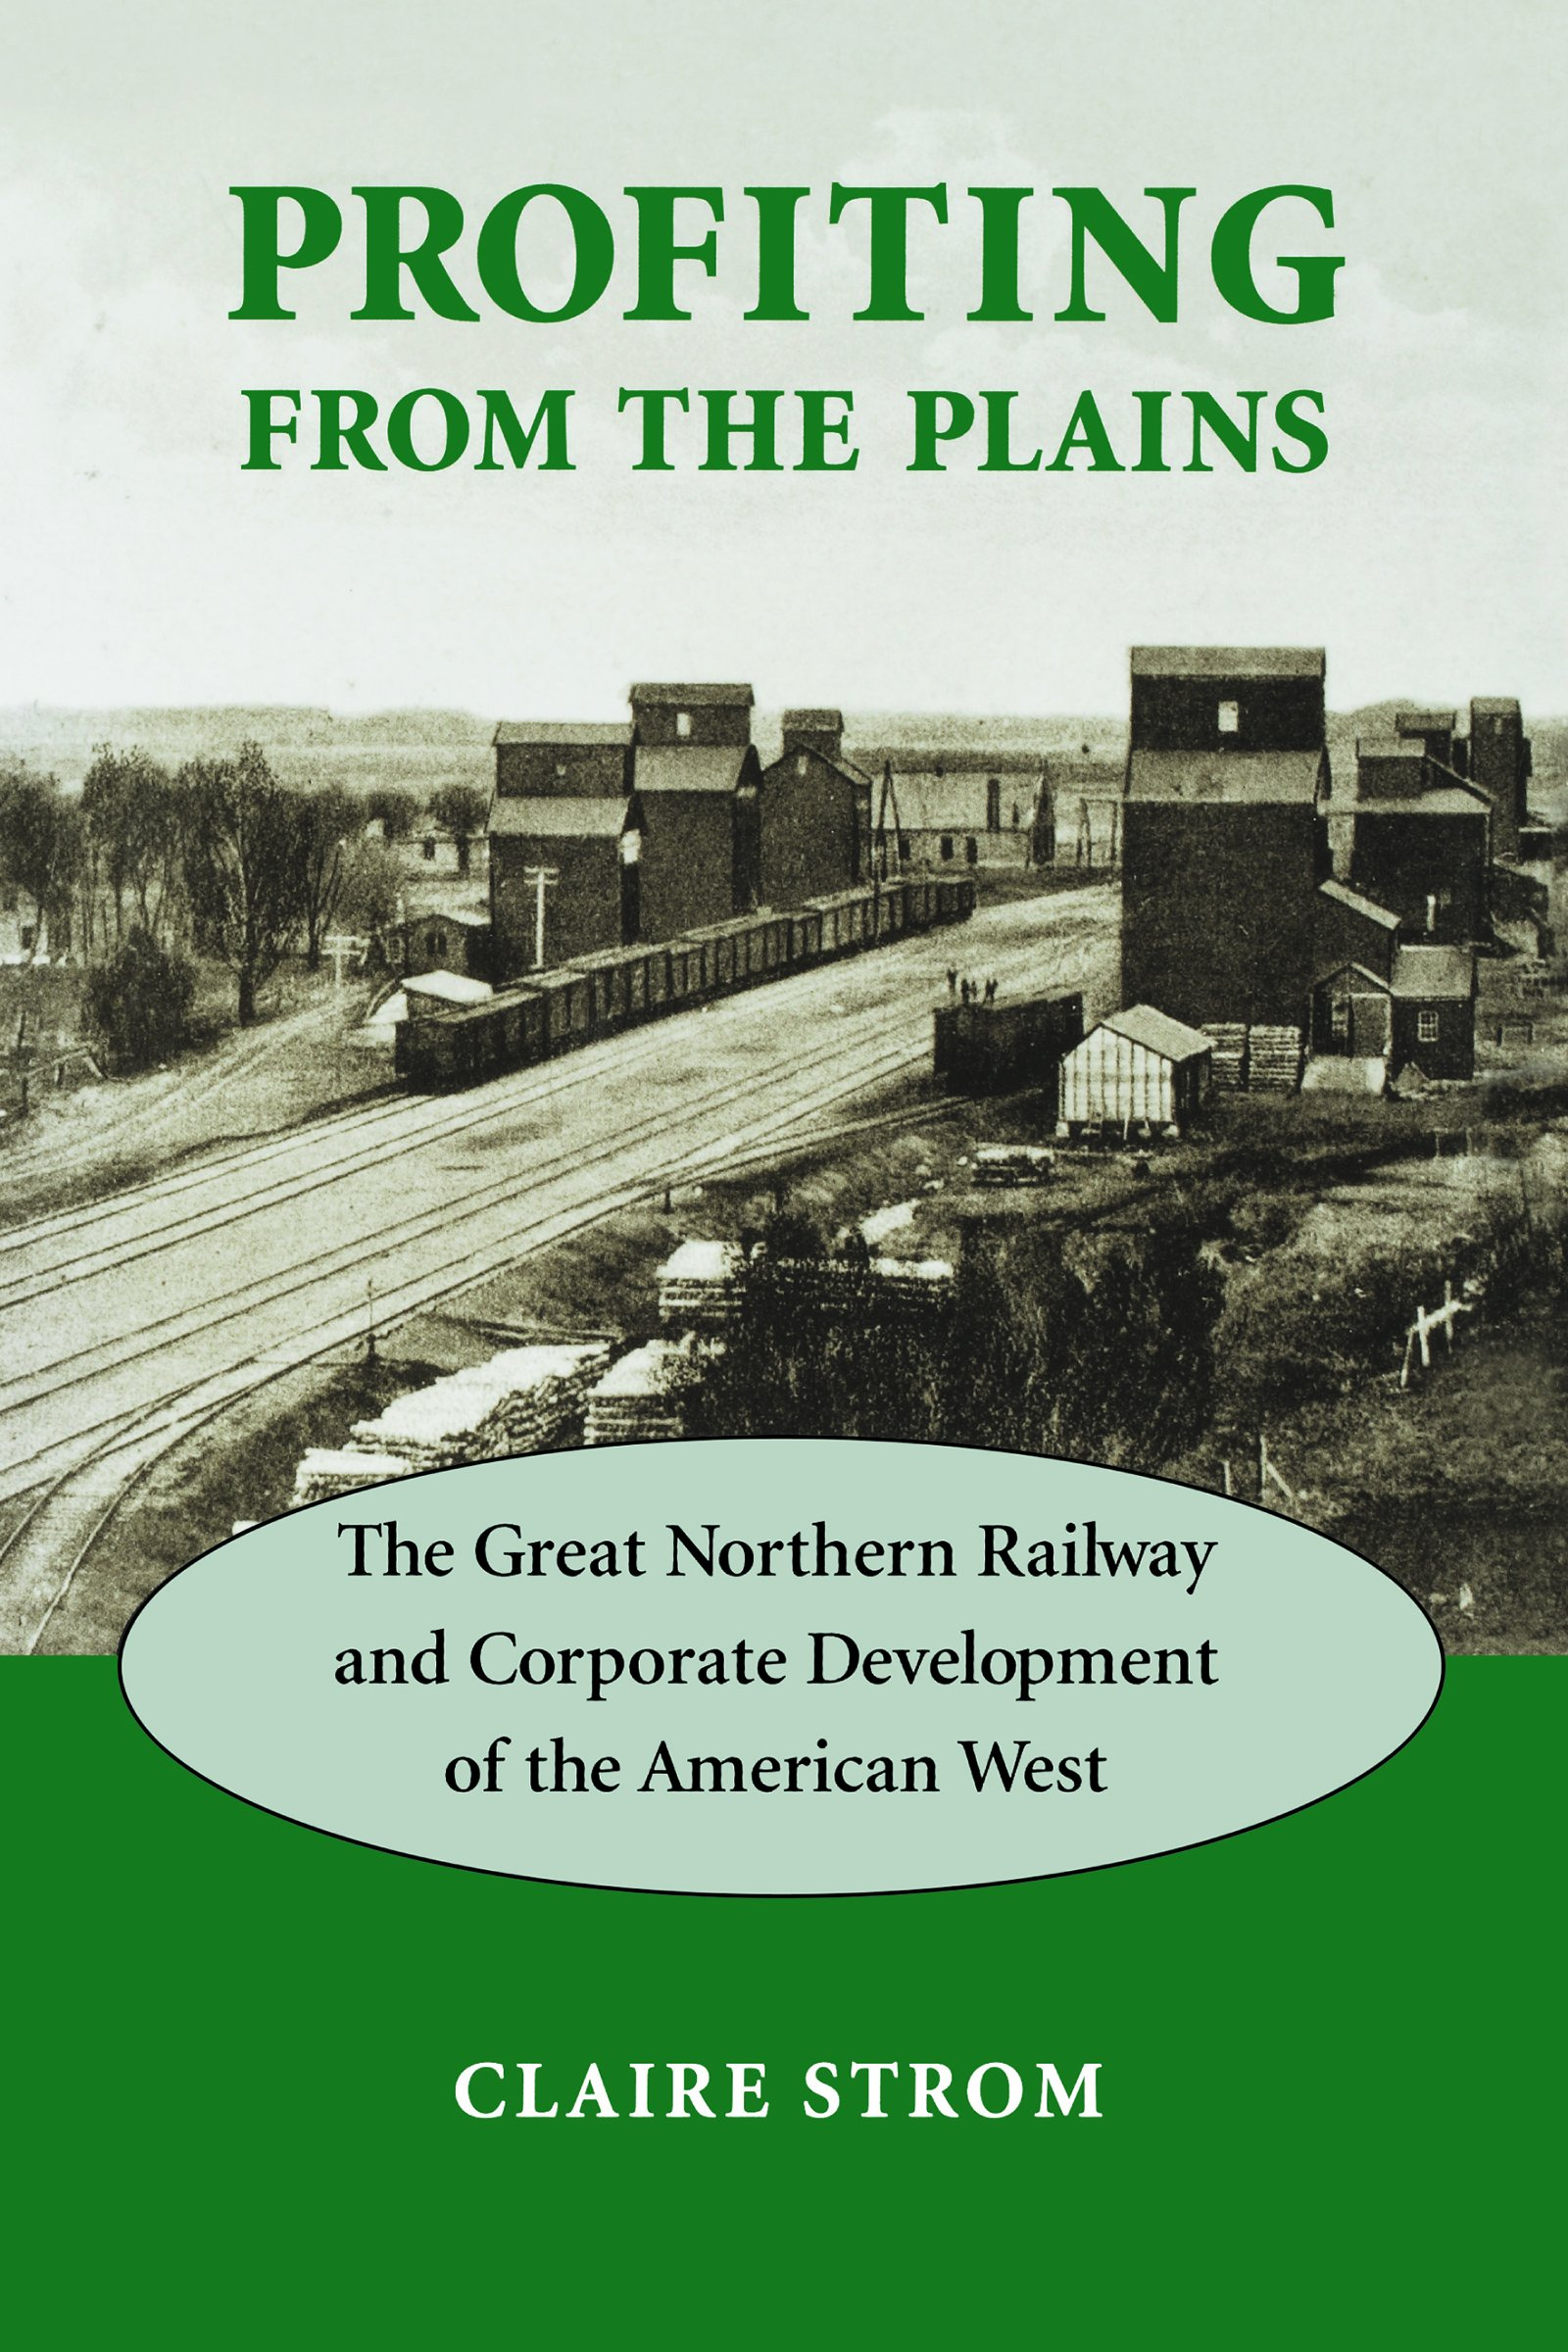 Download Profiting from the Plains: The Great Northern Railway and Corporate Development of the American West PDF